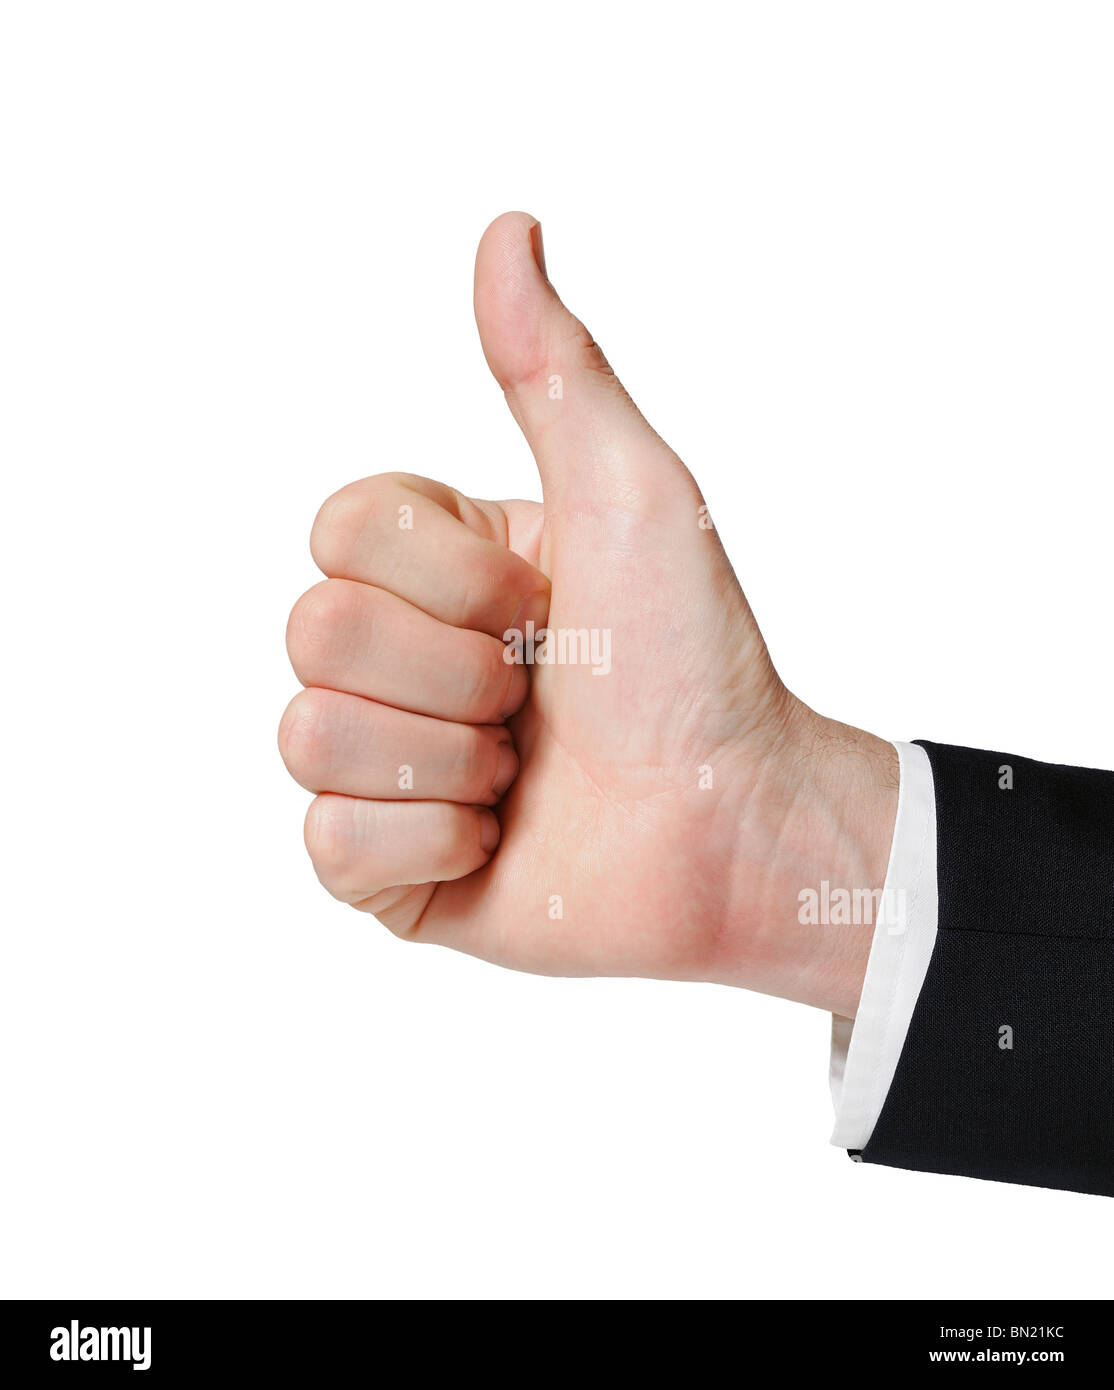 Thumbs Up from a Businessman - Stock Image